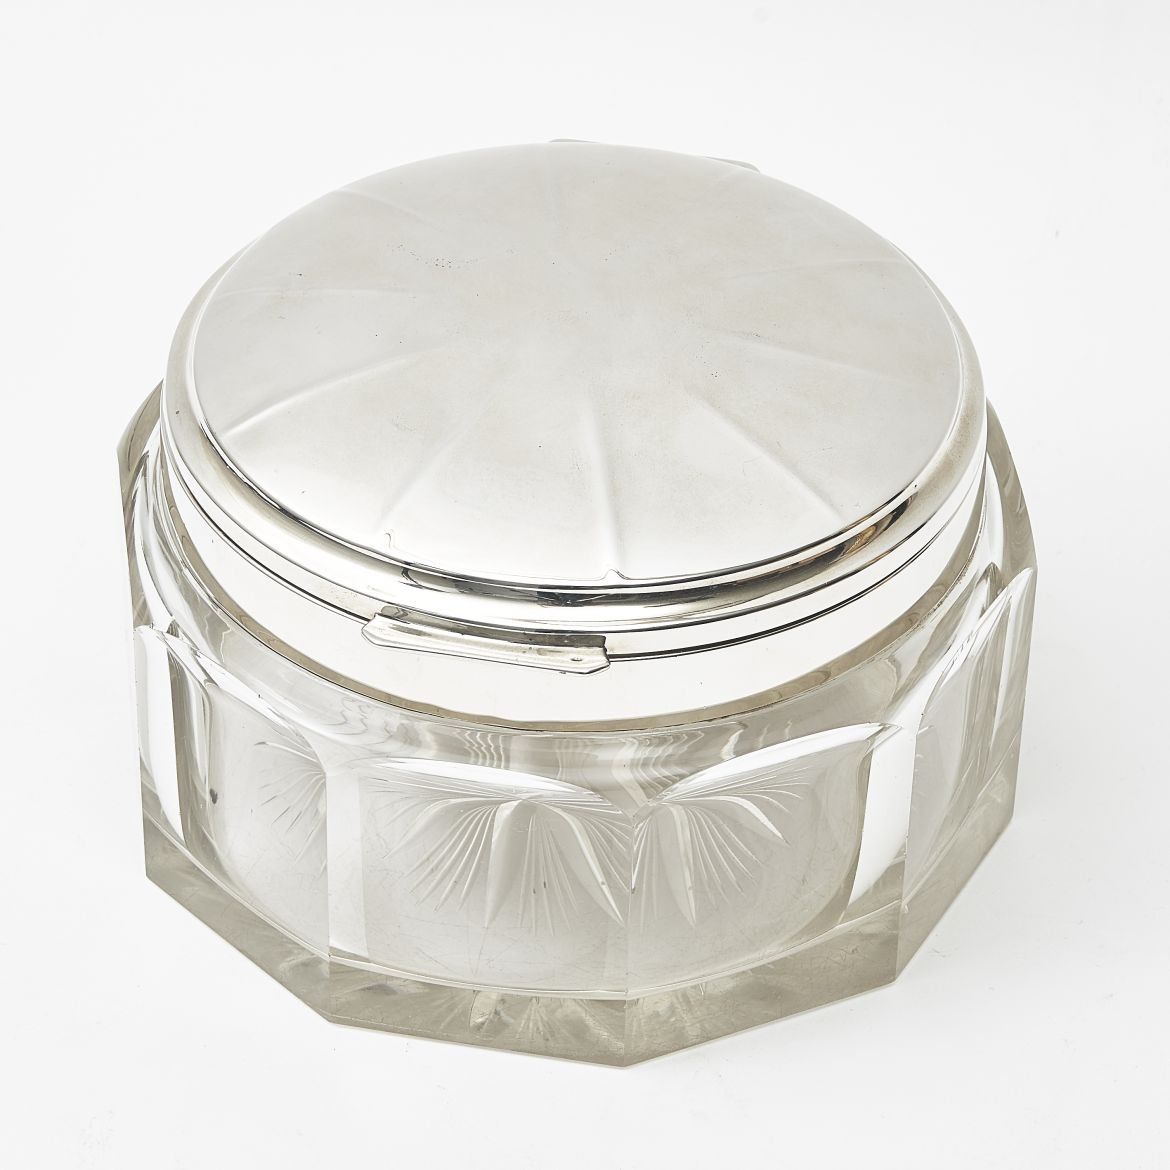 Decagon Shaped German Glass Box With Silver Lid